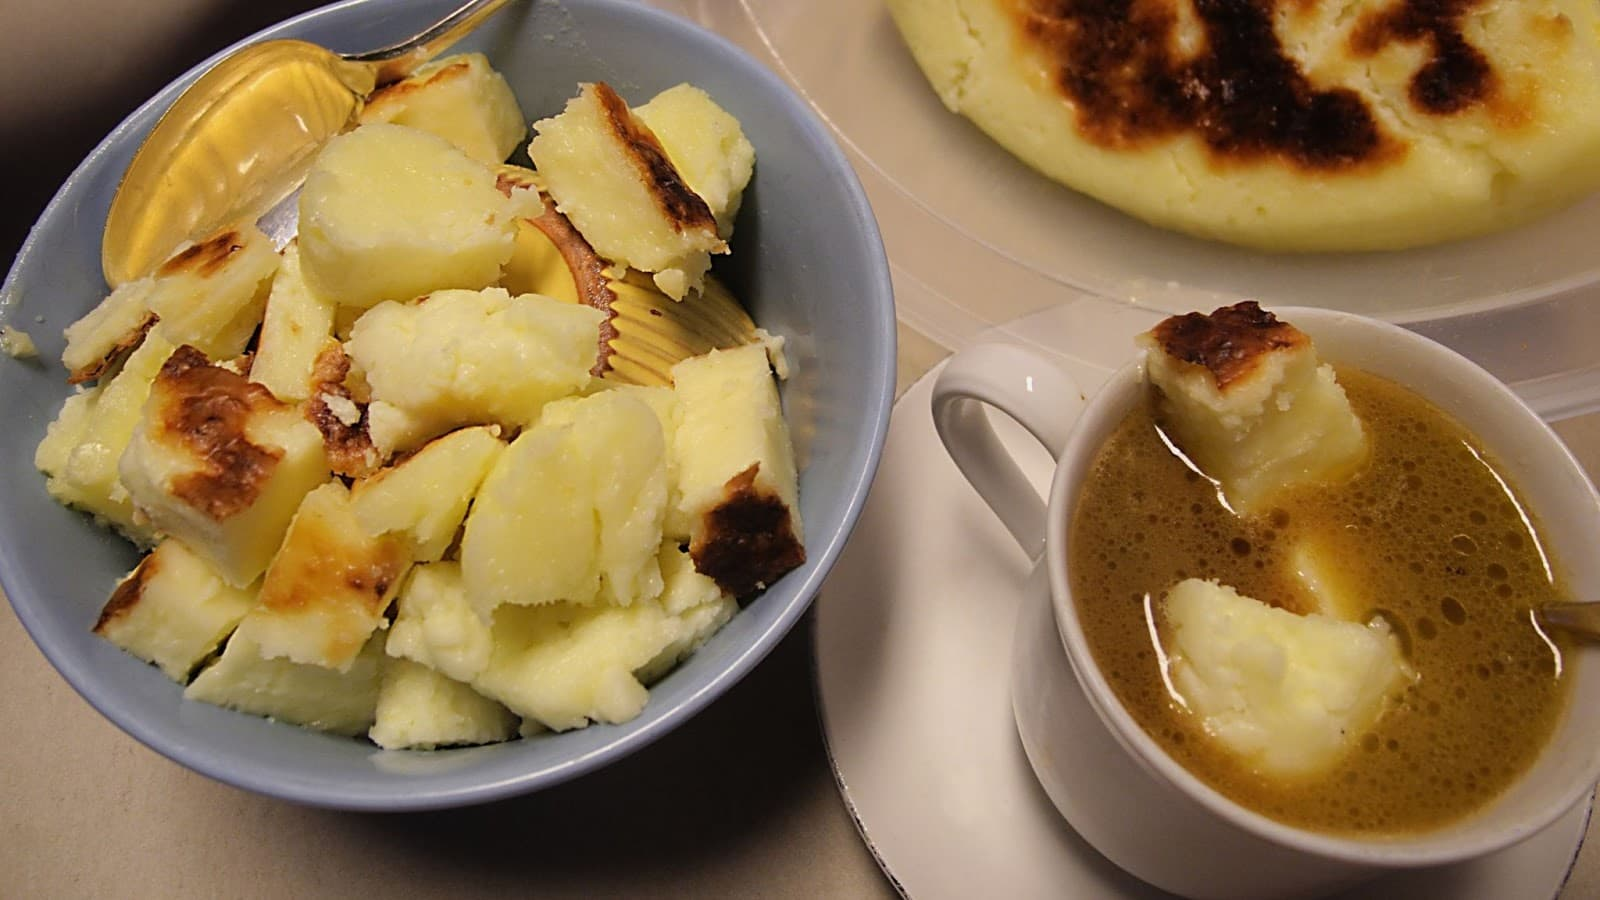 Kaffeost or cheese coffee can be found throughout Scandinavia